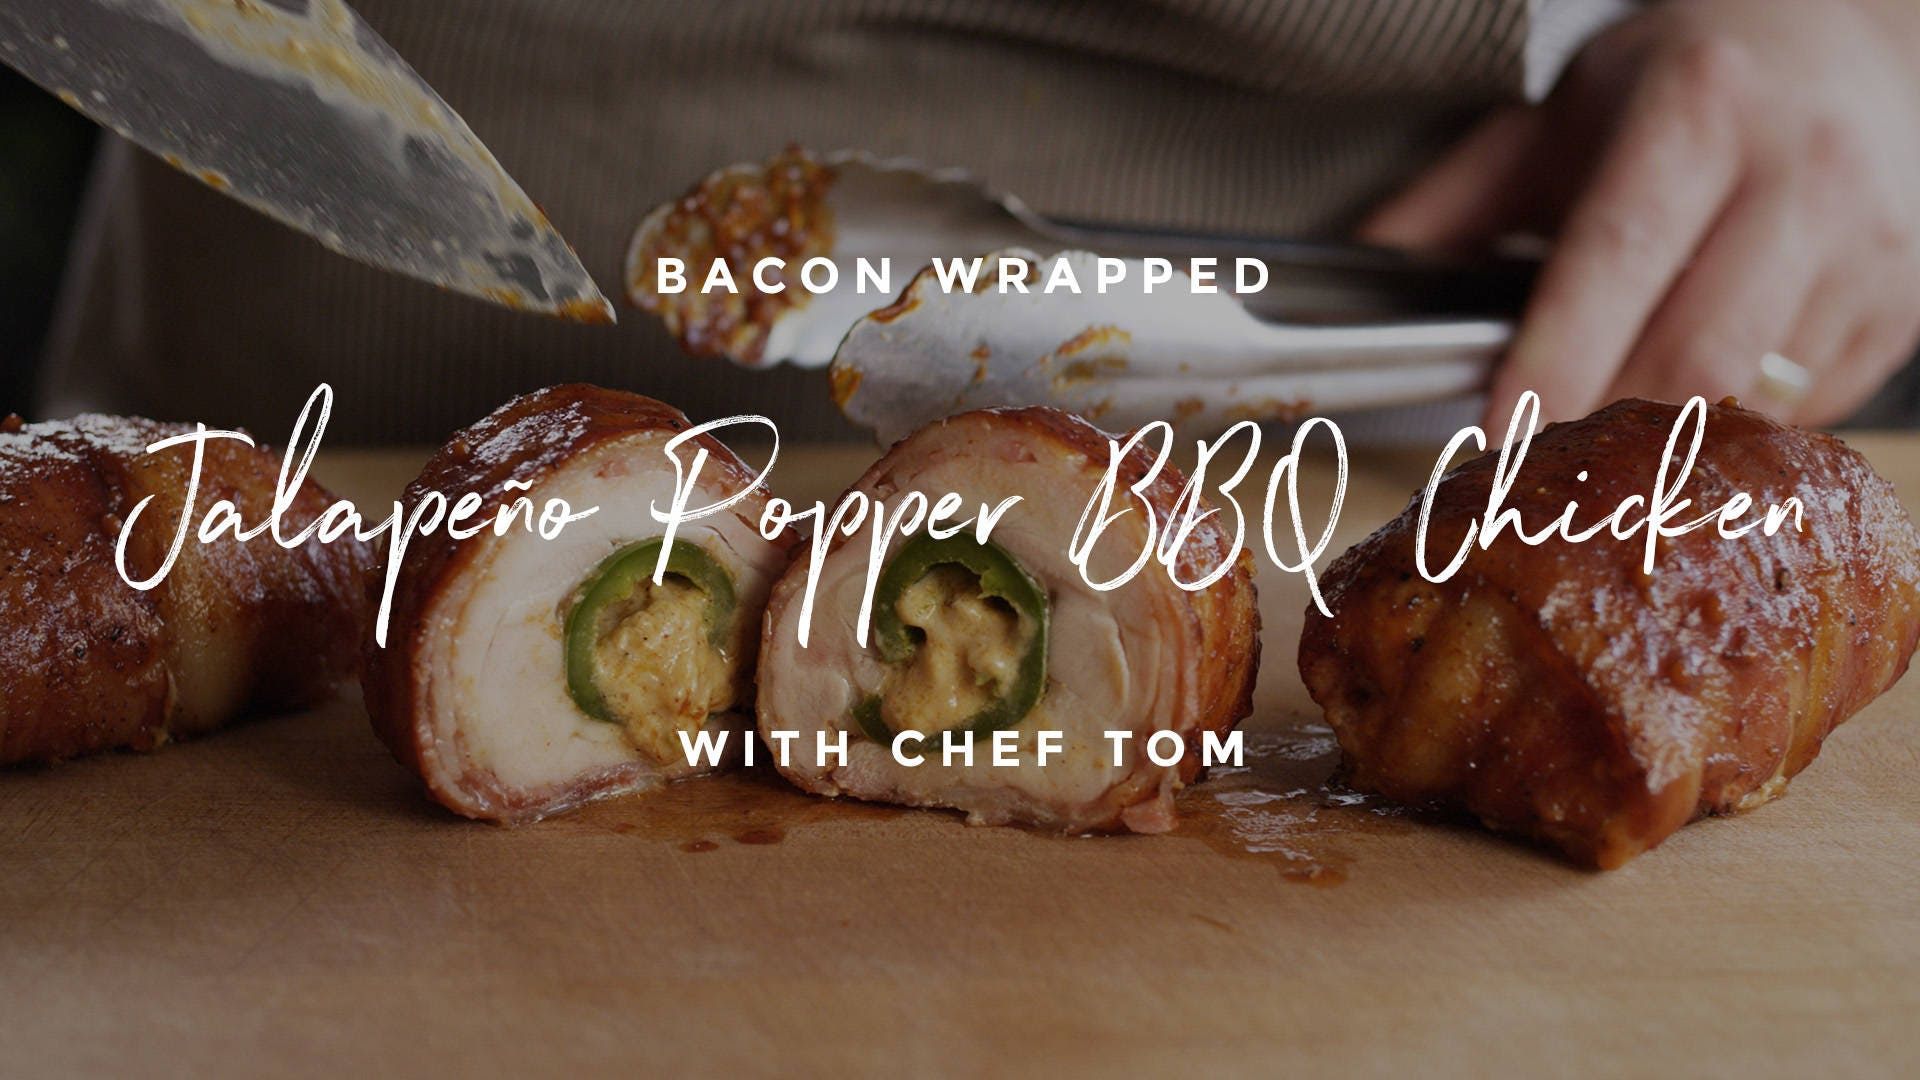 How to make Bacon Wrapped Jalapeño Popper Stuffed Barbecue Chicken